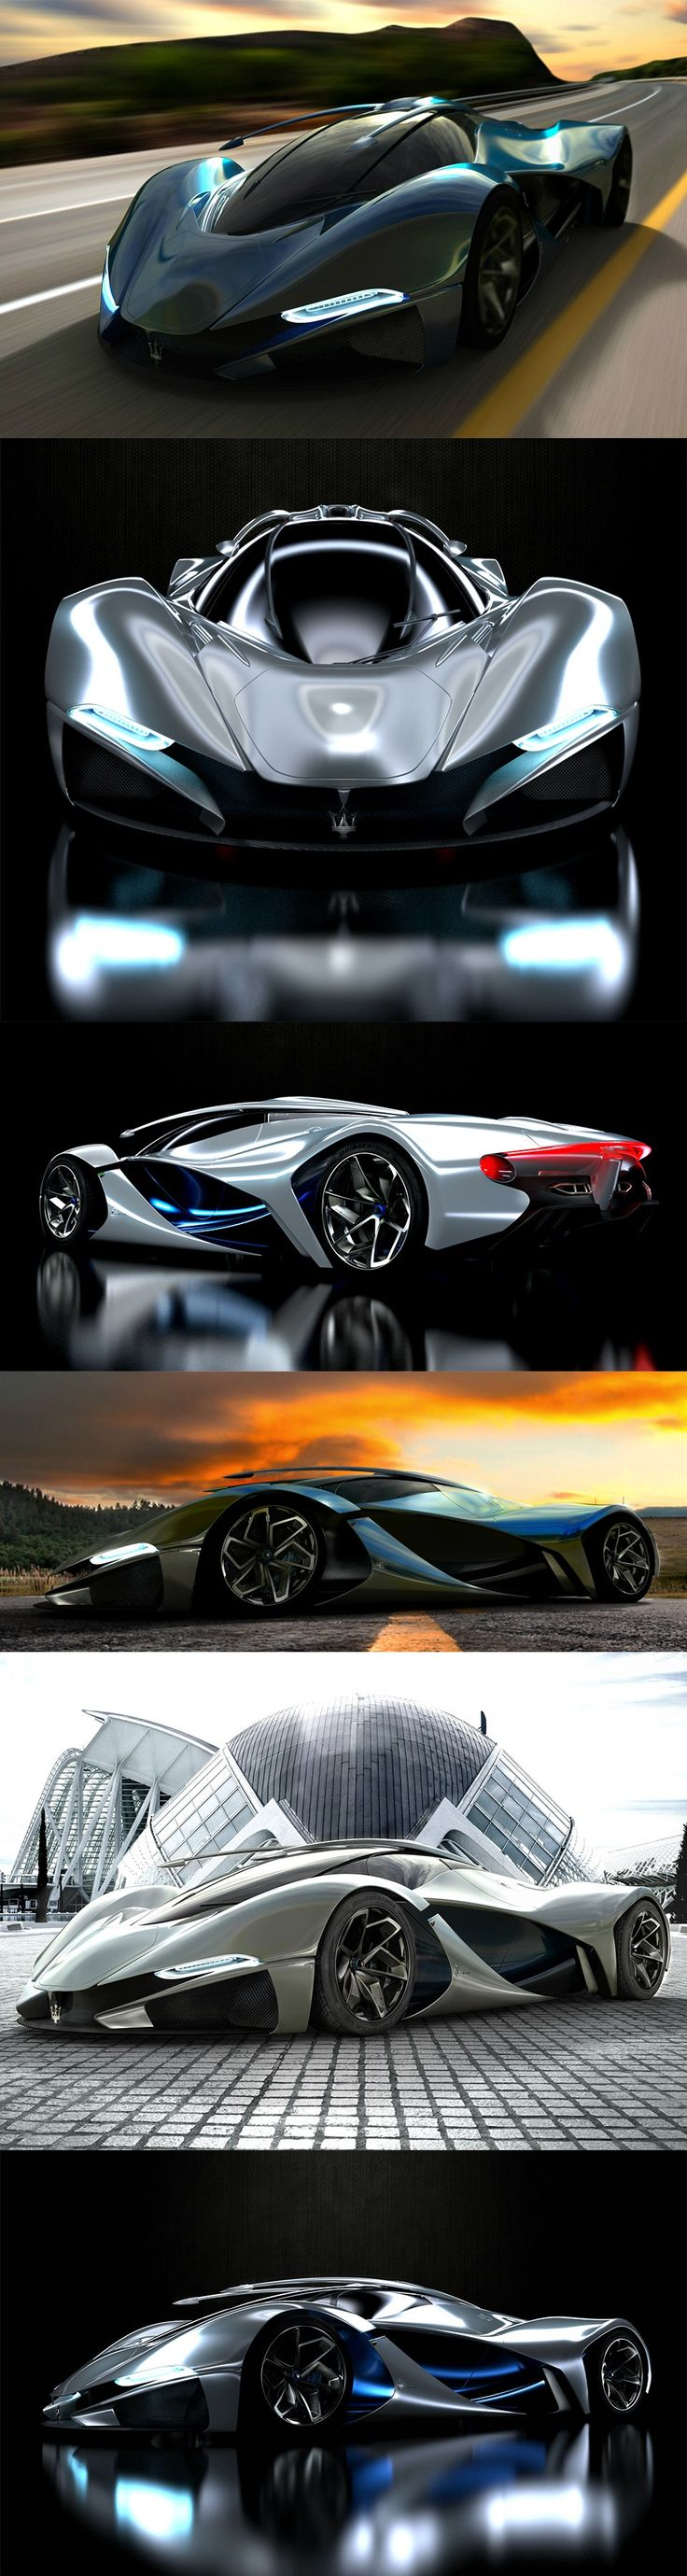 LaMaserati - Concept Car by Mark Hostler